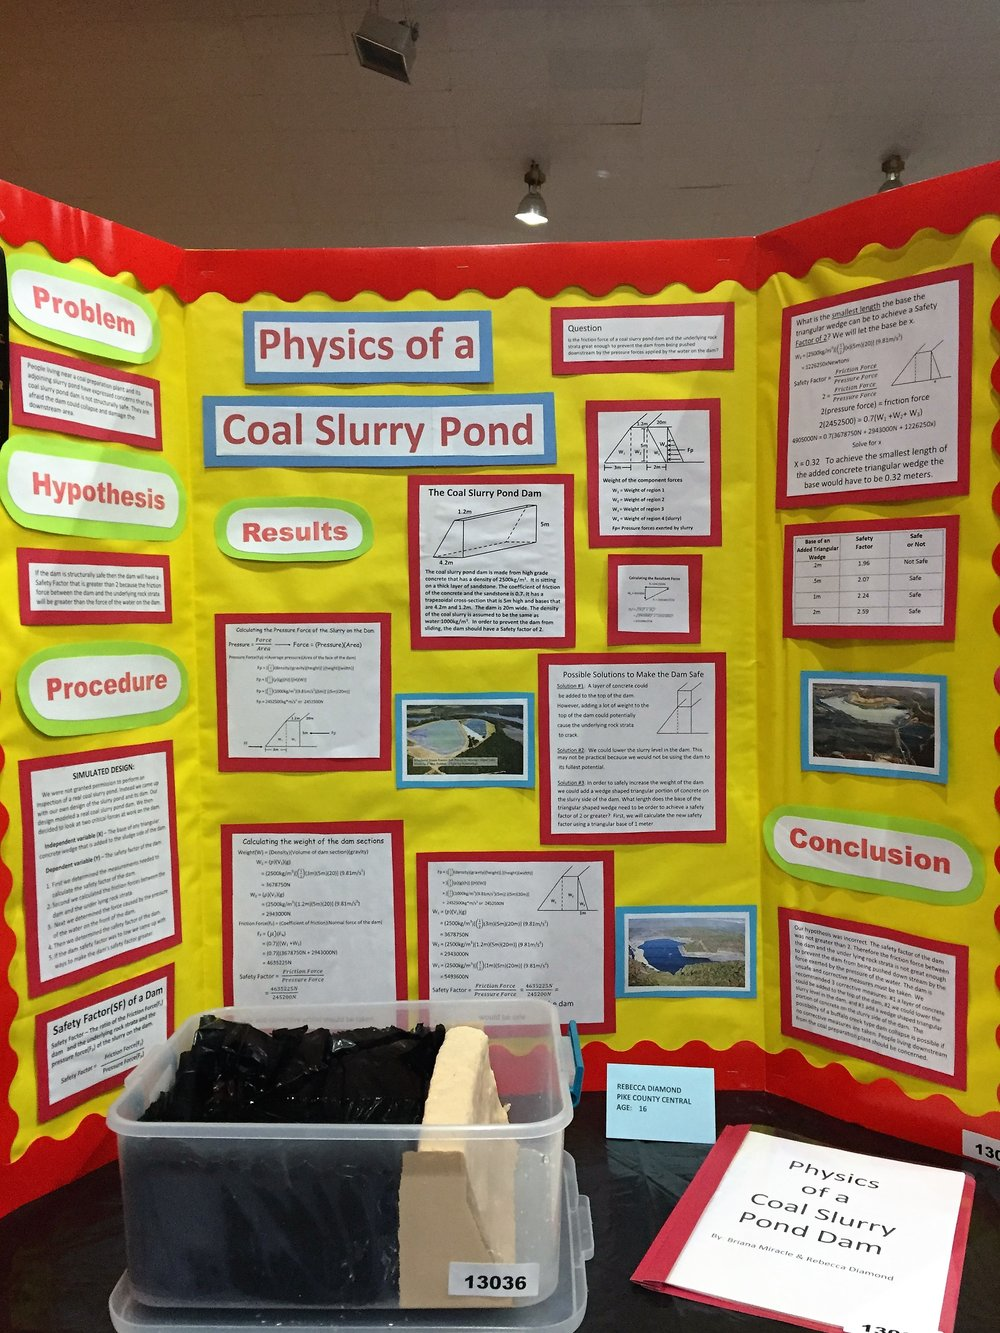 SCIENCE 1ST PLACE 9-12 13036.JPG